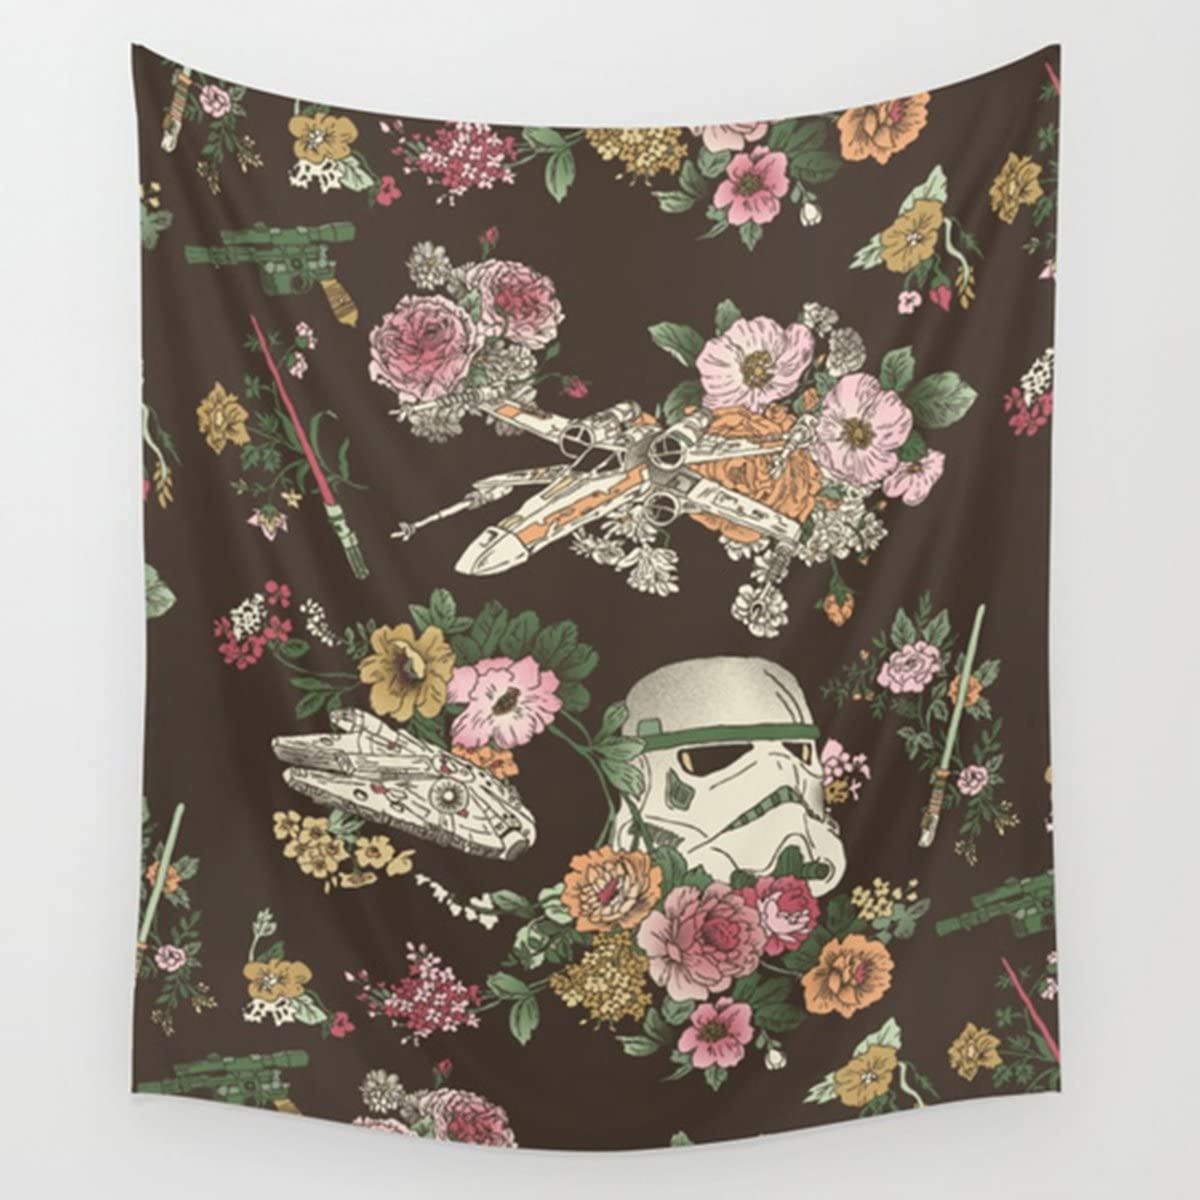 "Shukqueen Tapestry, Many Floral Print Black White Wall Hanging Tapestry Dorm Decor (51"" H x 60"" W, Floral)"